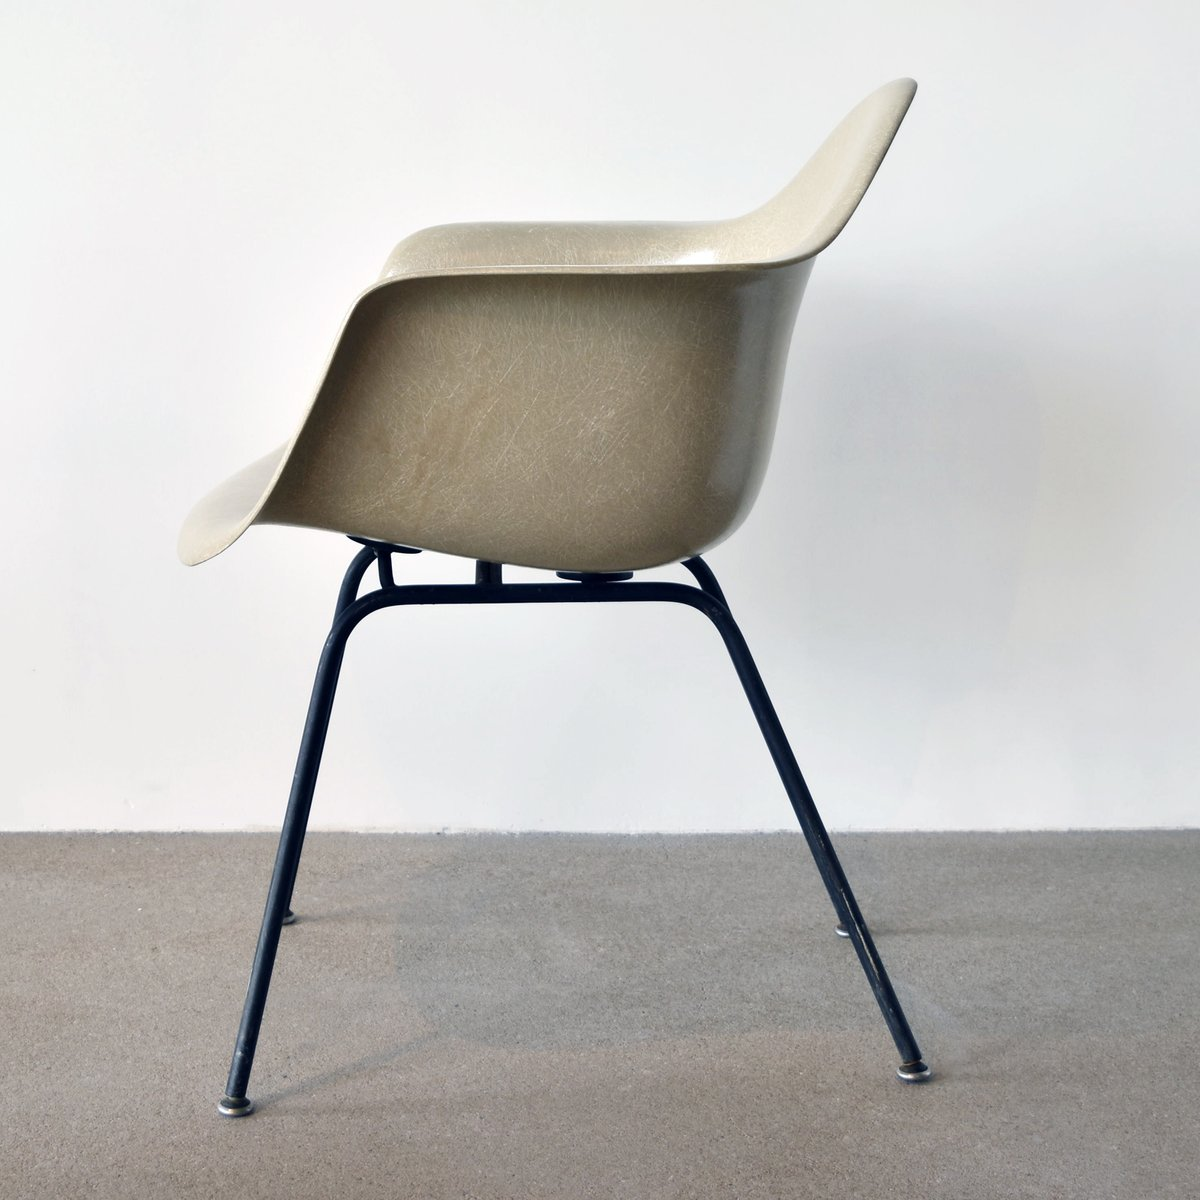 dax chair by charles and ray eames for herman miller 1955 for sale at. Black Bedroom Furniture Sets. Home Design Ideas